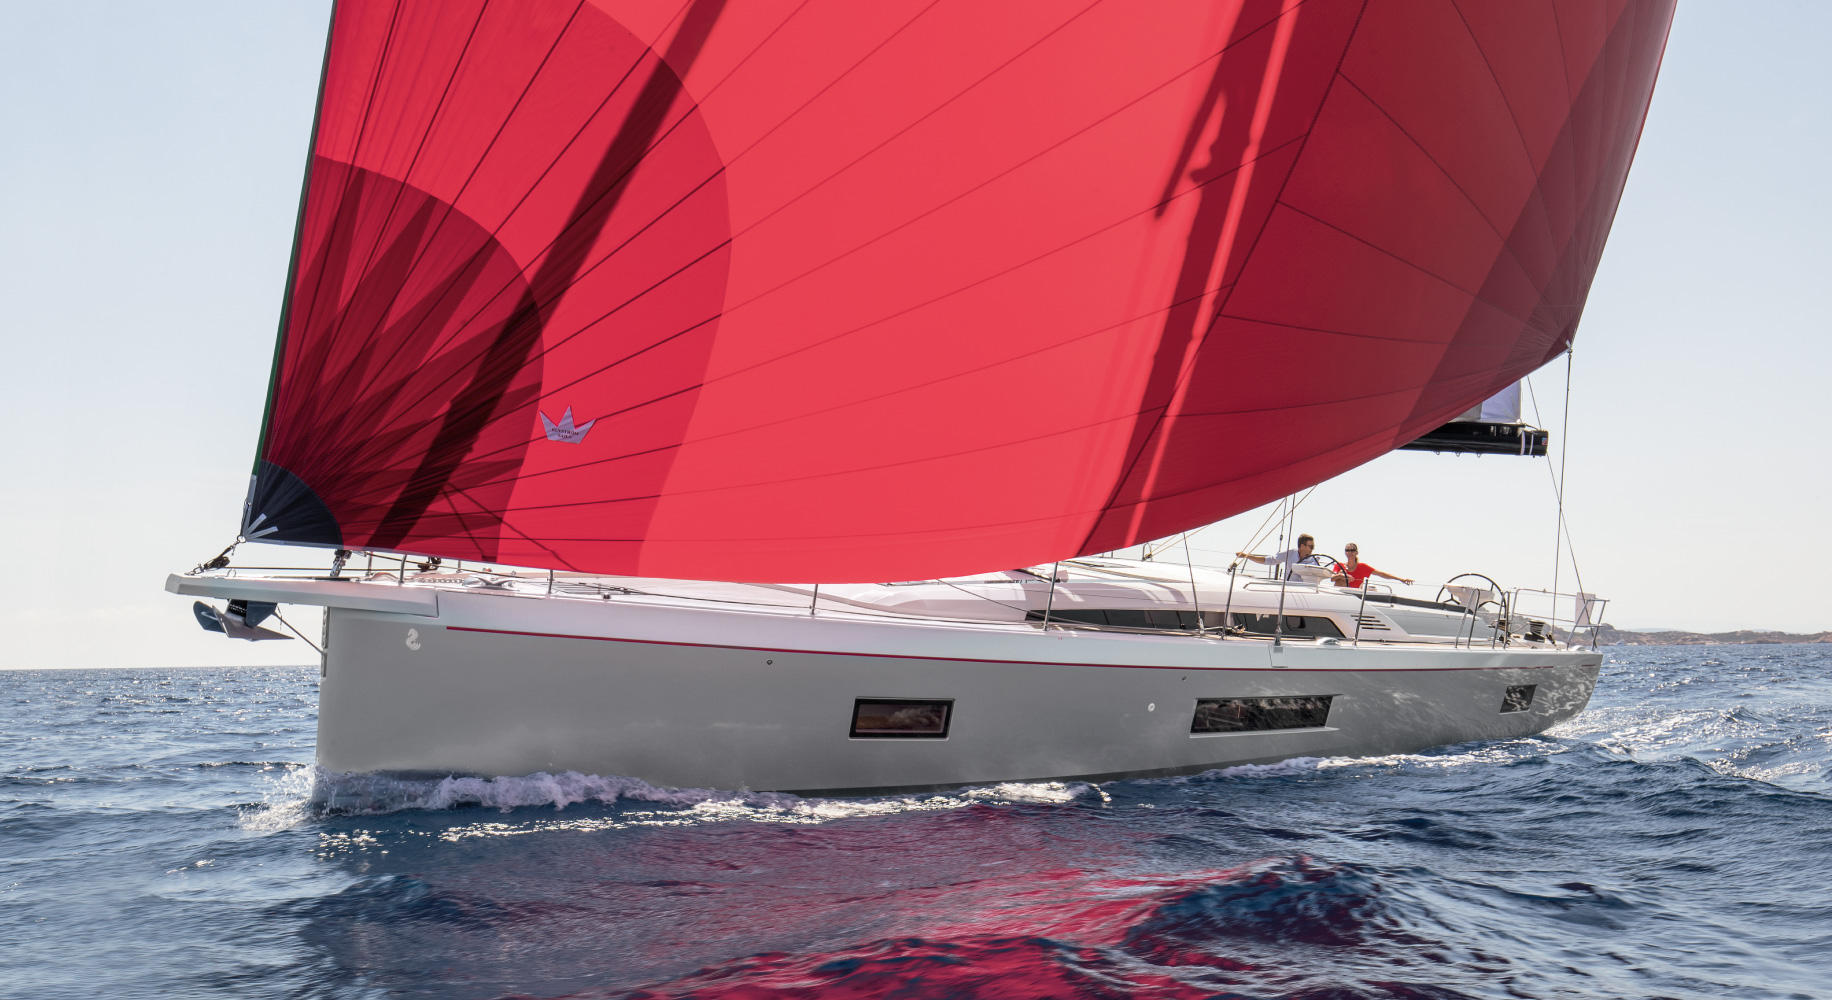 Oceanis 51.1 Prestige - Sailing Yacht for Charter in Greece